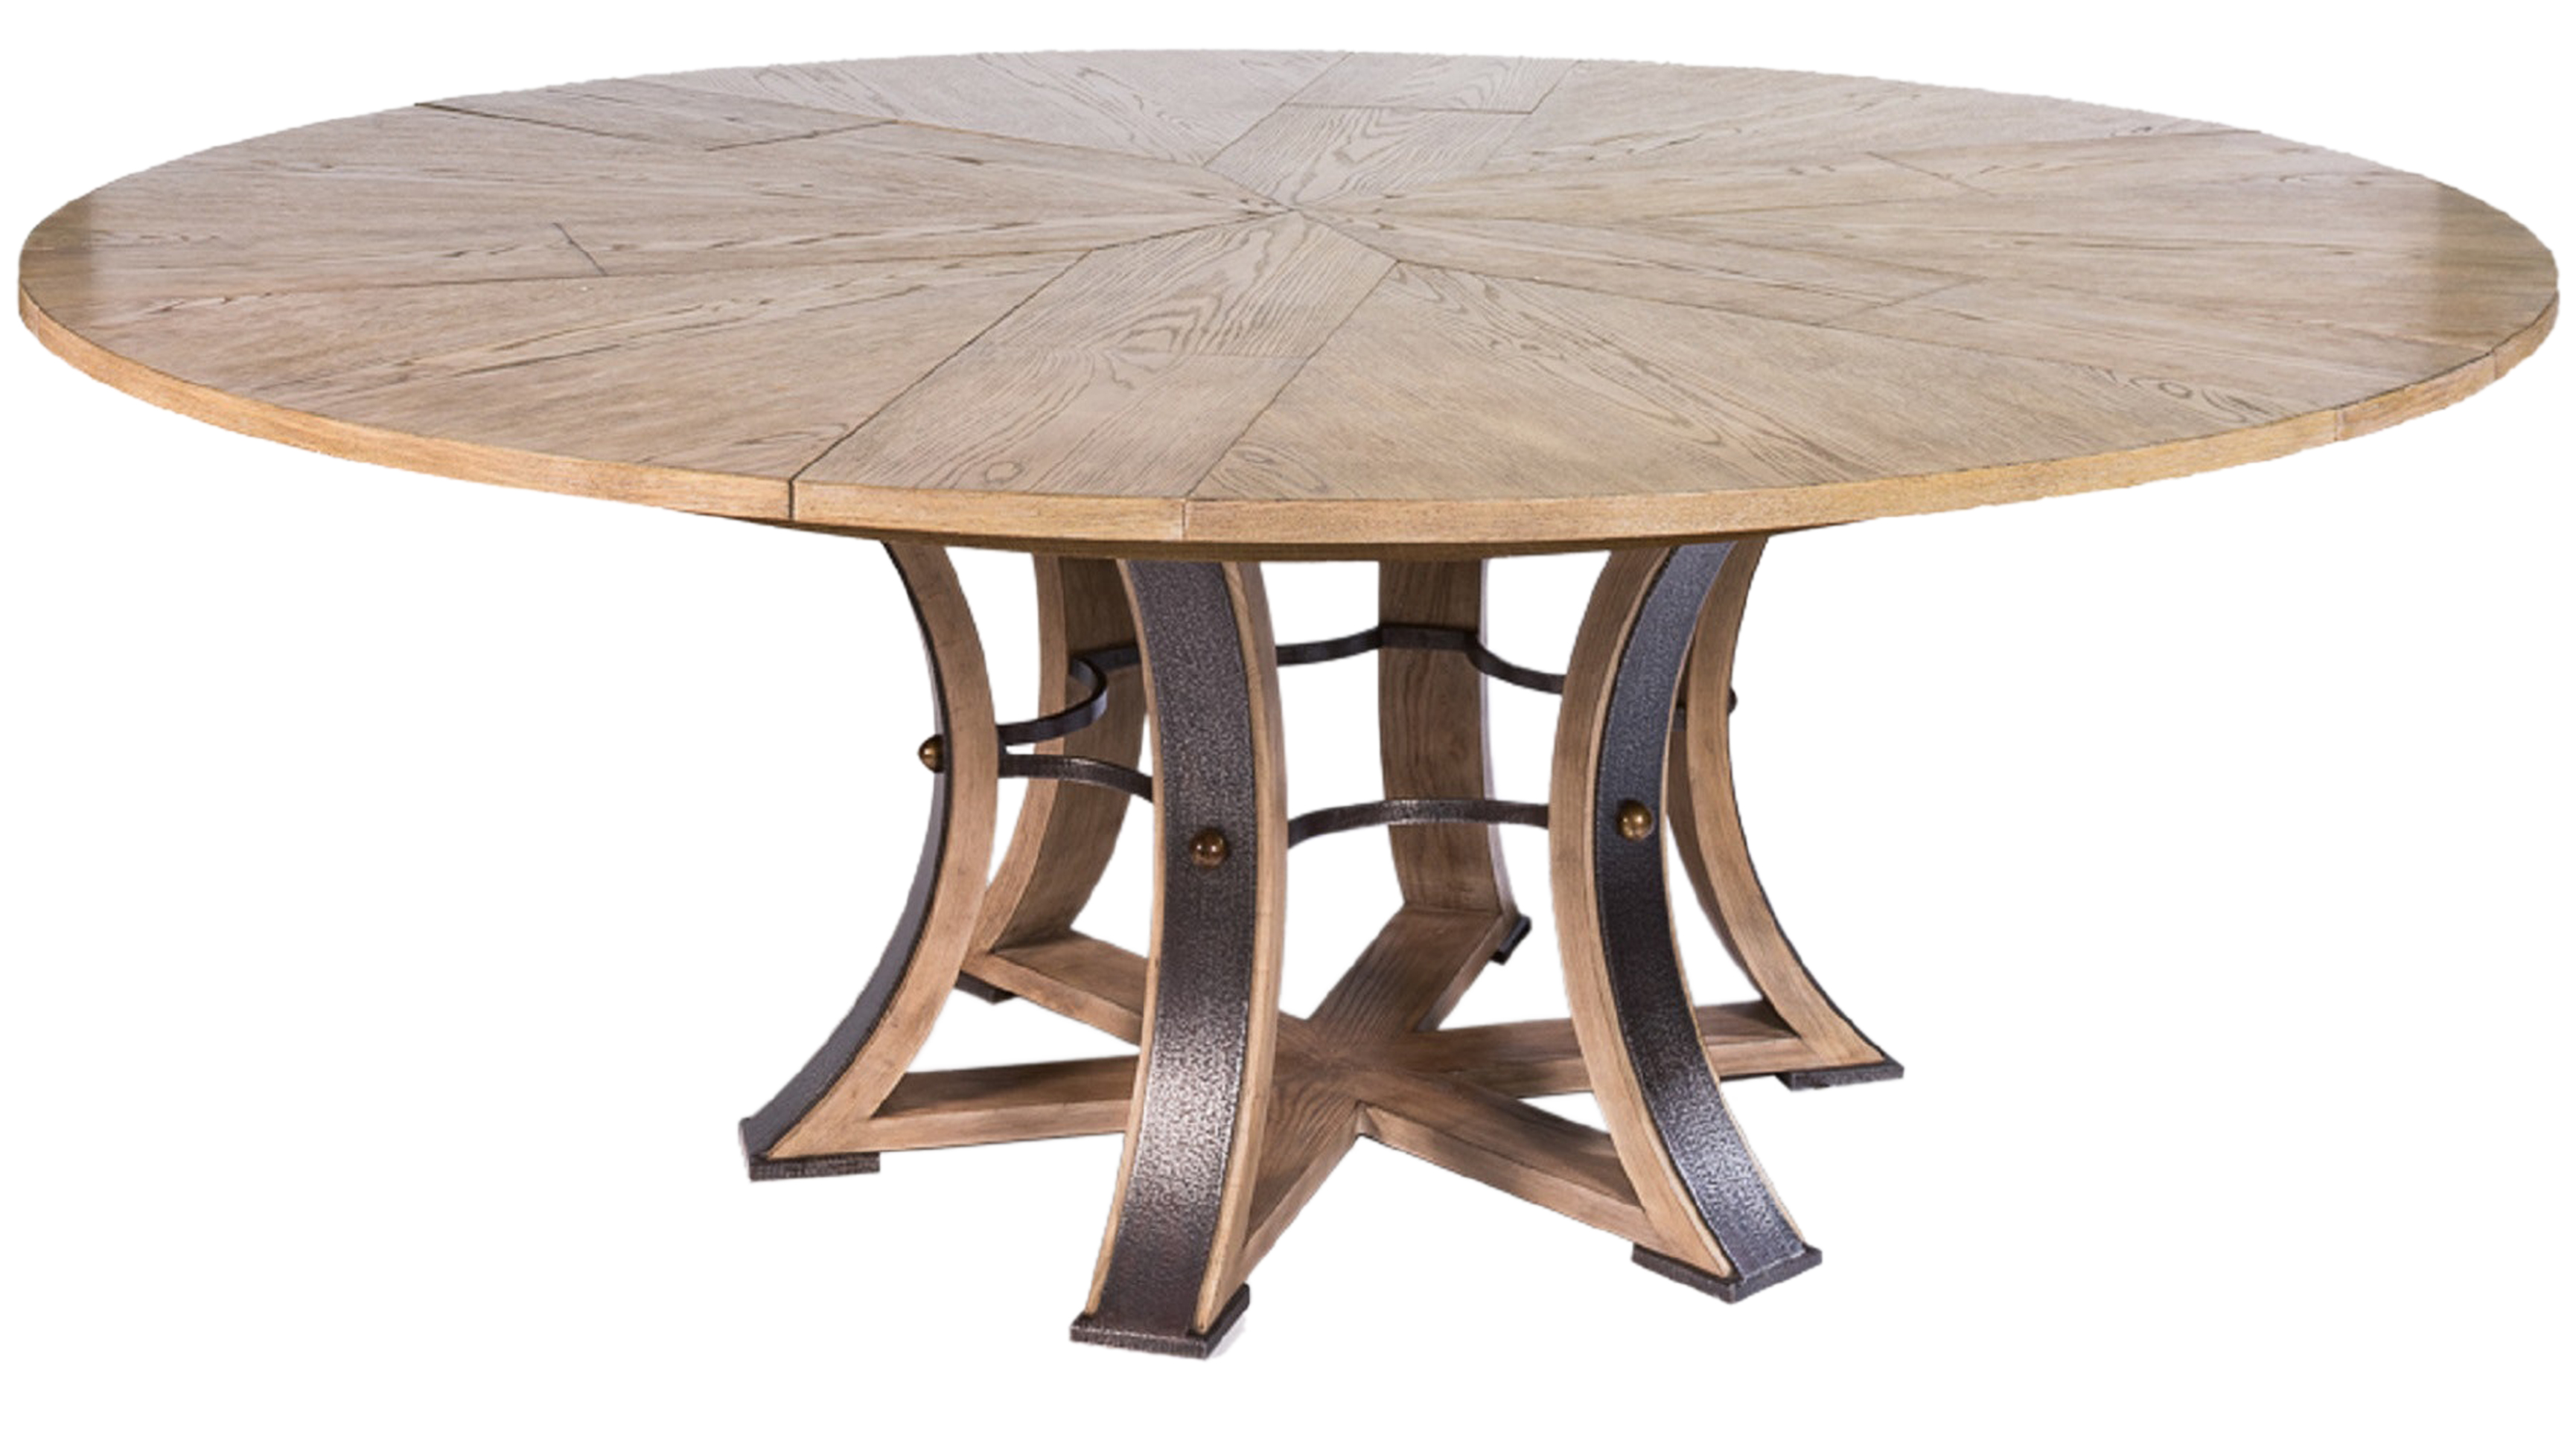 Expandable Dining Table - Transitional Organic Mid-Century Modern Dining  Room Tables - Dering Hall